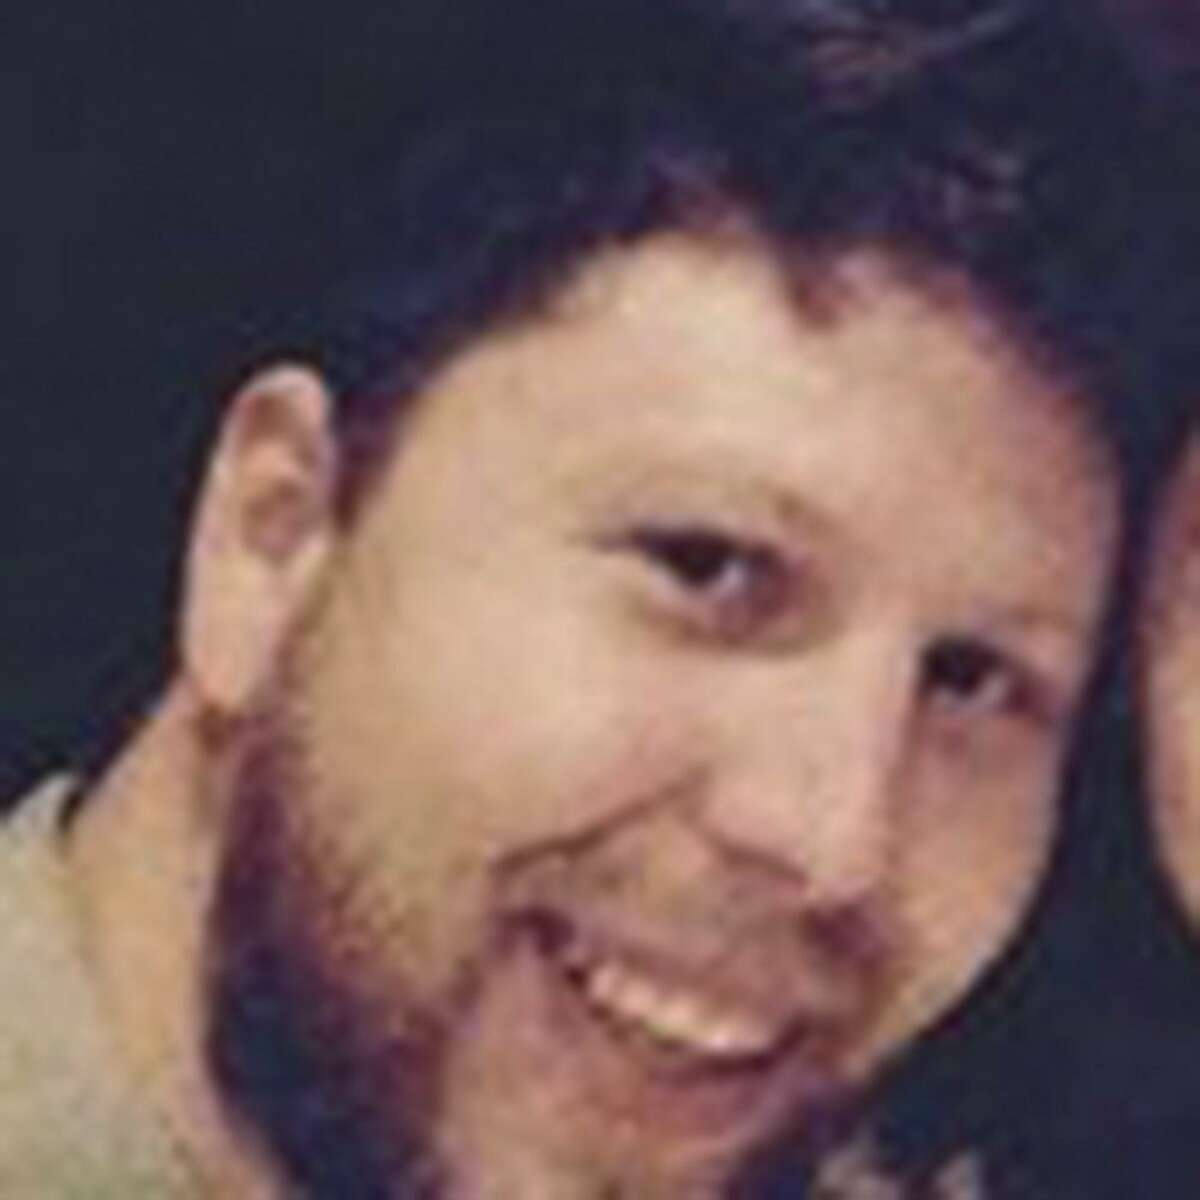 Kris Workman, 34, survived Sunday's shooting but was badly injured. He's recovering at Brooke Army Medical Center.